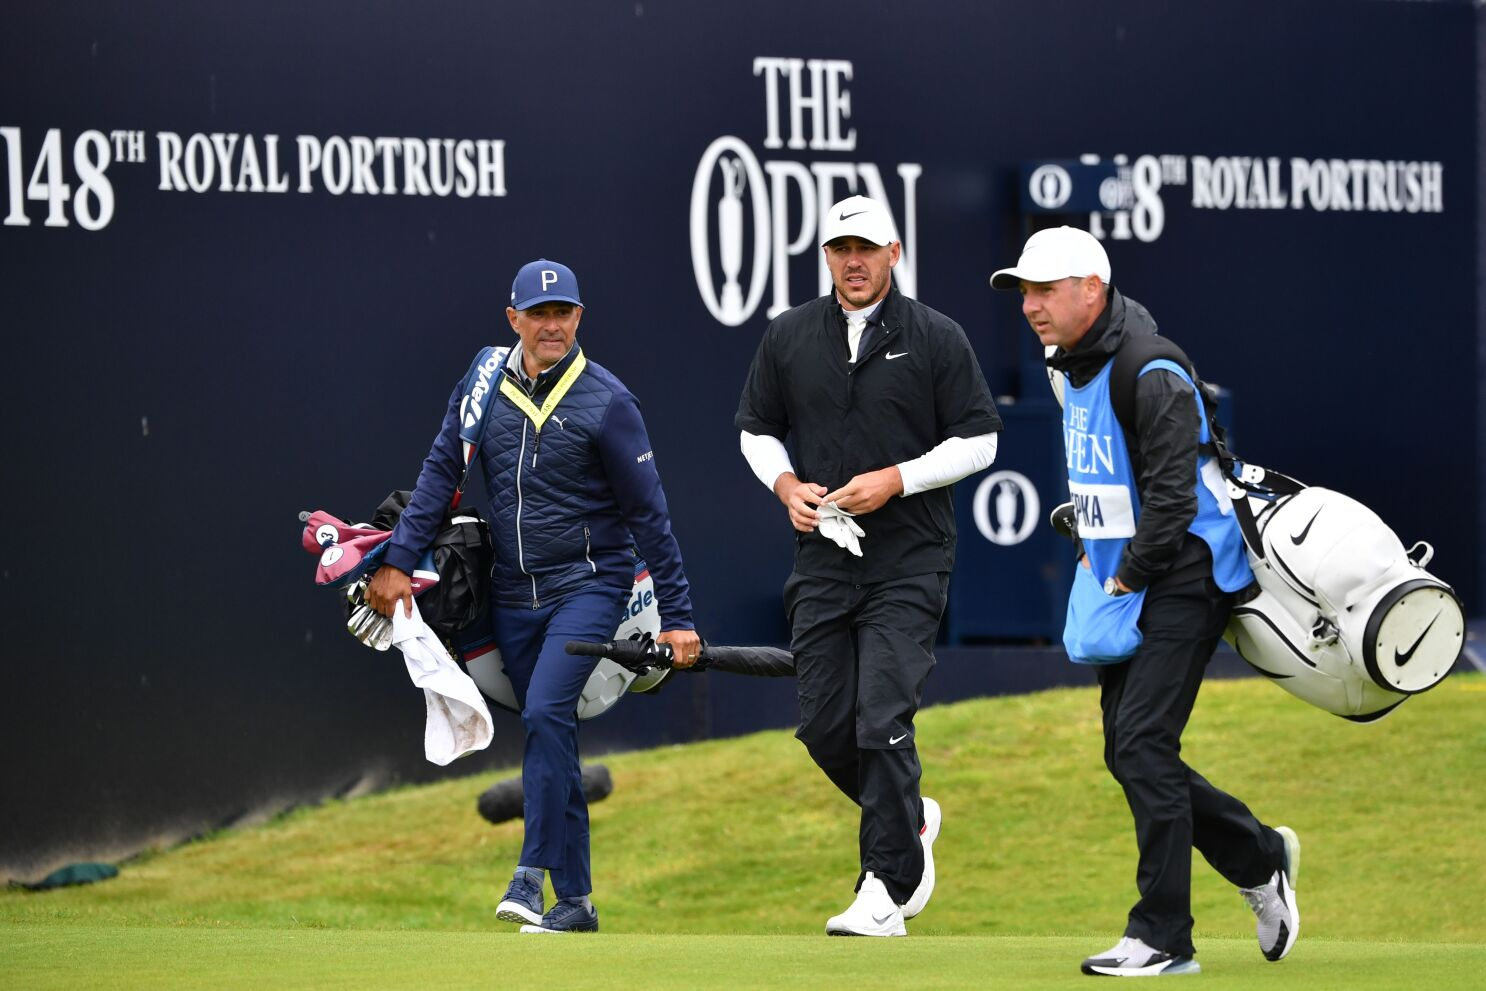 Caddies for Koepka, McIlroy help solve the mystery of Portrush - Los Angeles Times